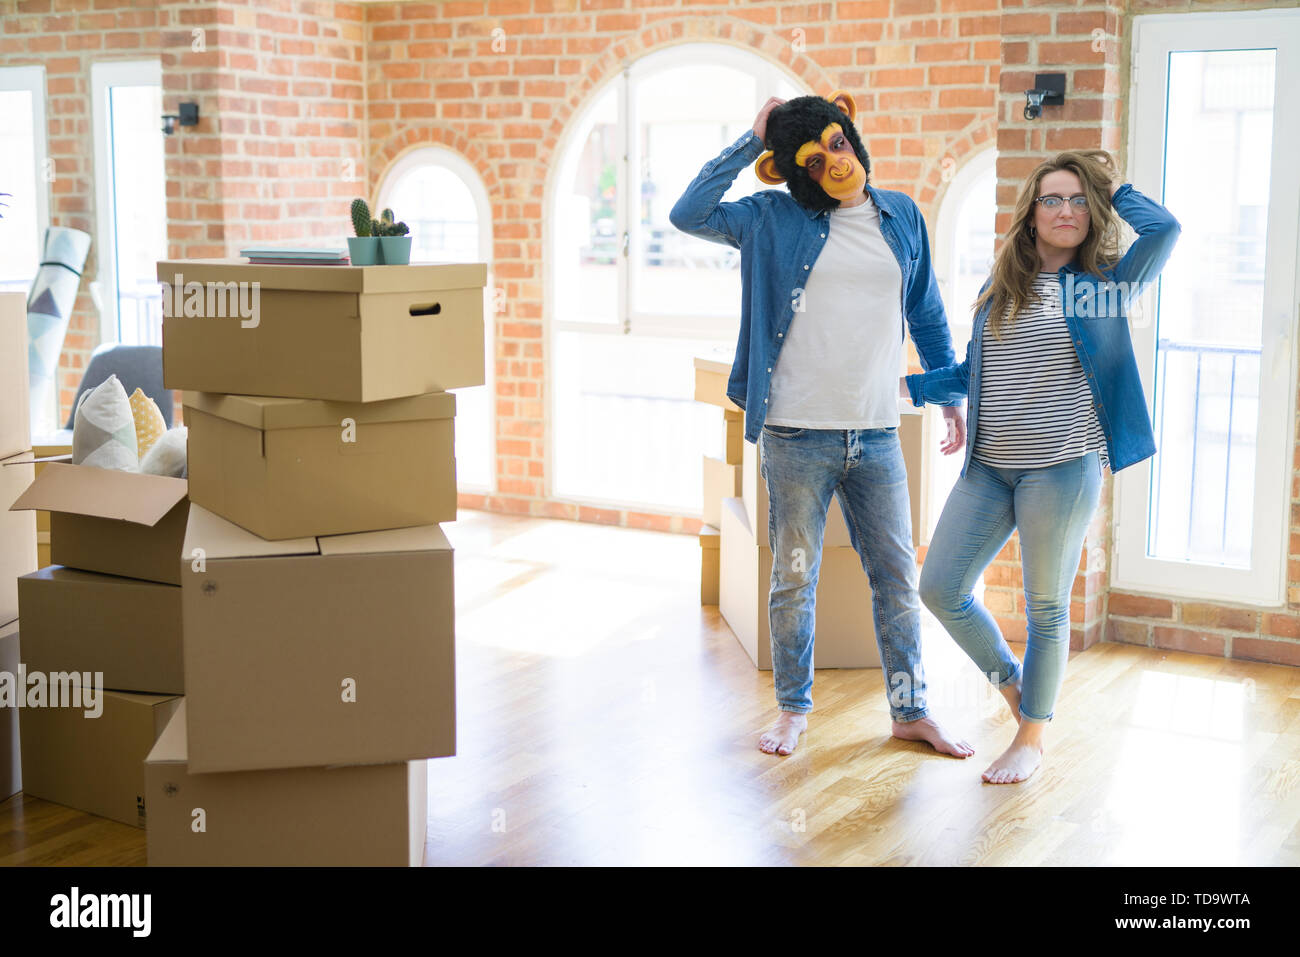 Young couple having fun wearing a monkey mask moving to a new apartment around cardboard boxes - Stock Image